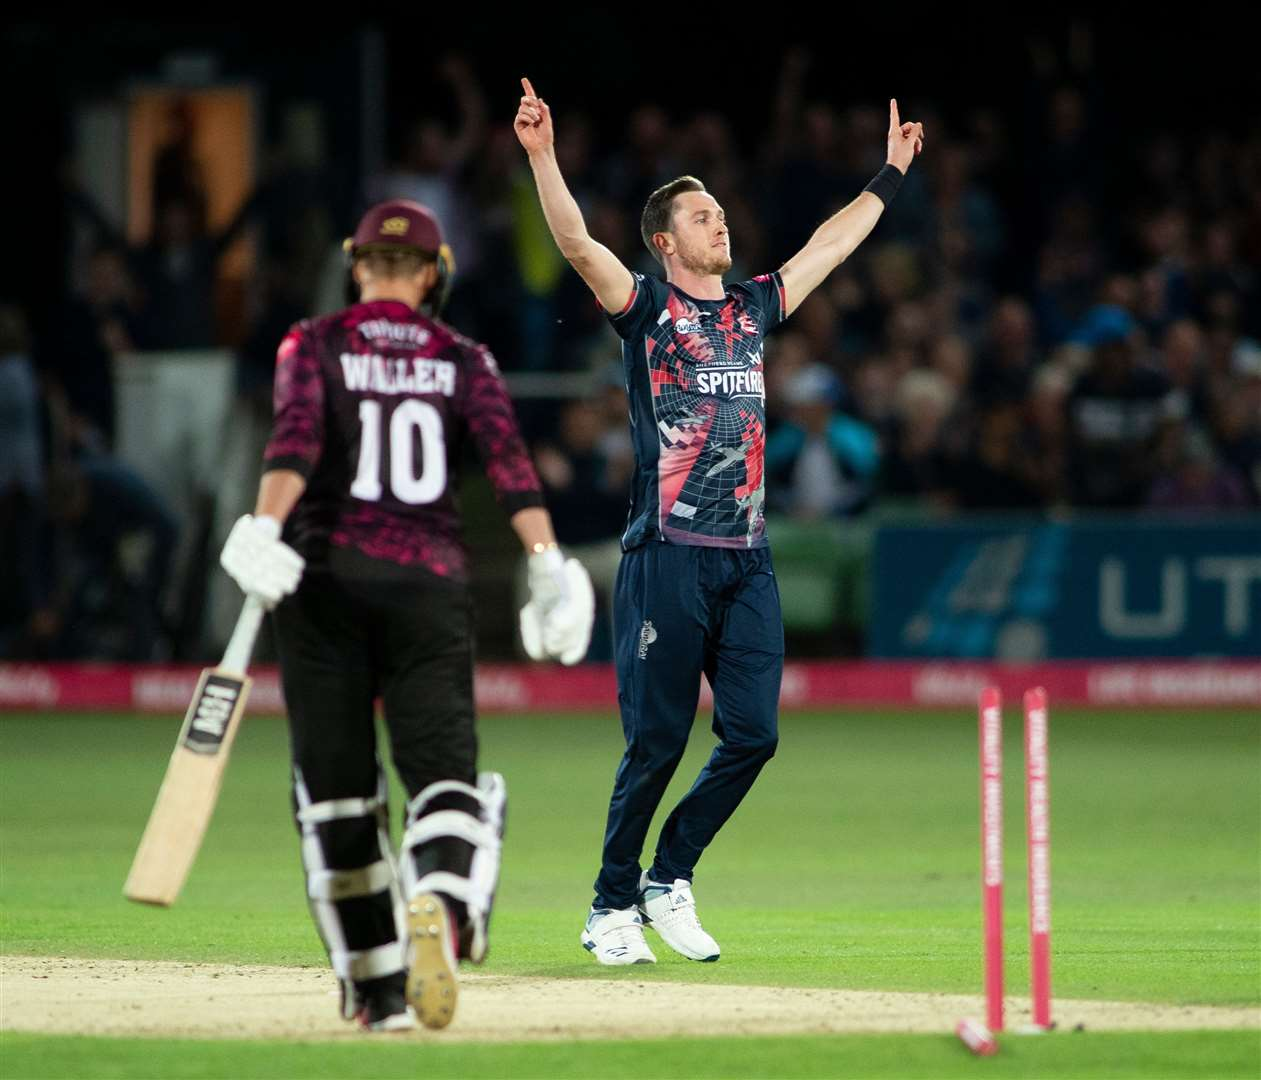 Adam Milne seals victory for Kent against Somerset in the T20 Blast with the wicket of Max Waller. Picture: Ady Kerry